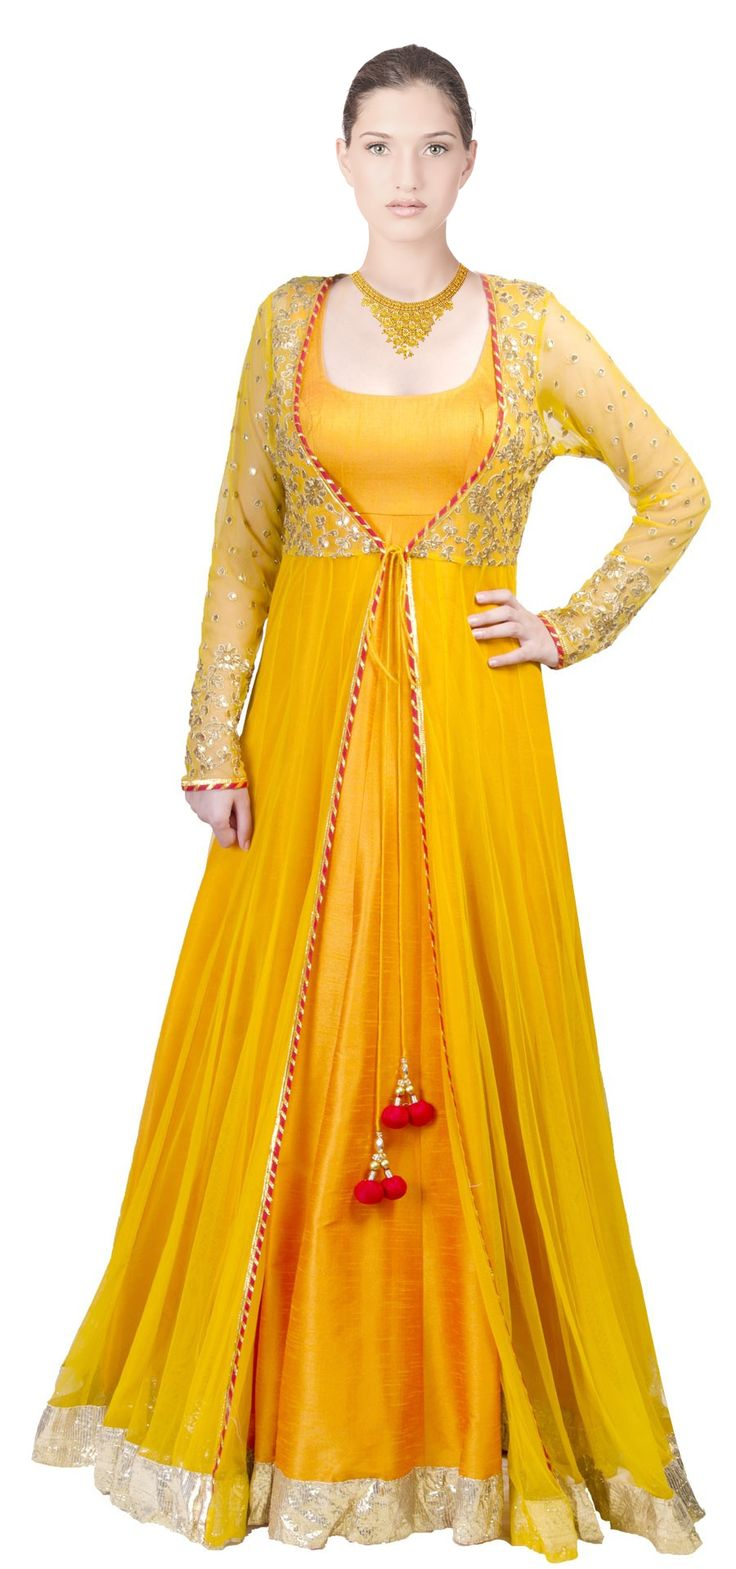 #AnarkaliSuits Mango Yellow Anarkali with sheer jacket at Shopittoday.net #Ladiessuits